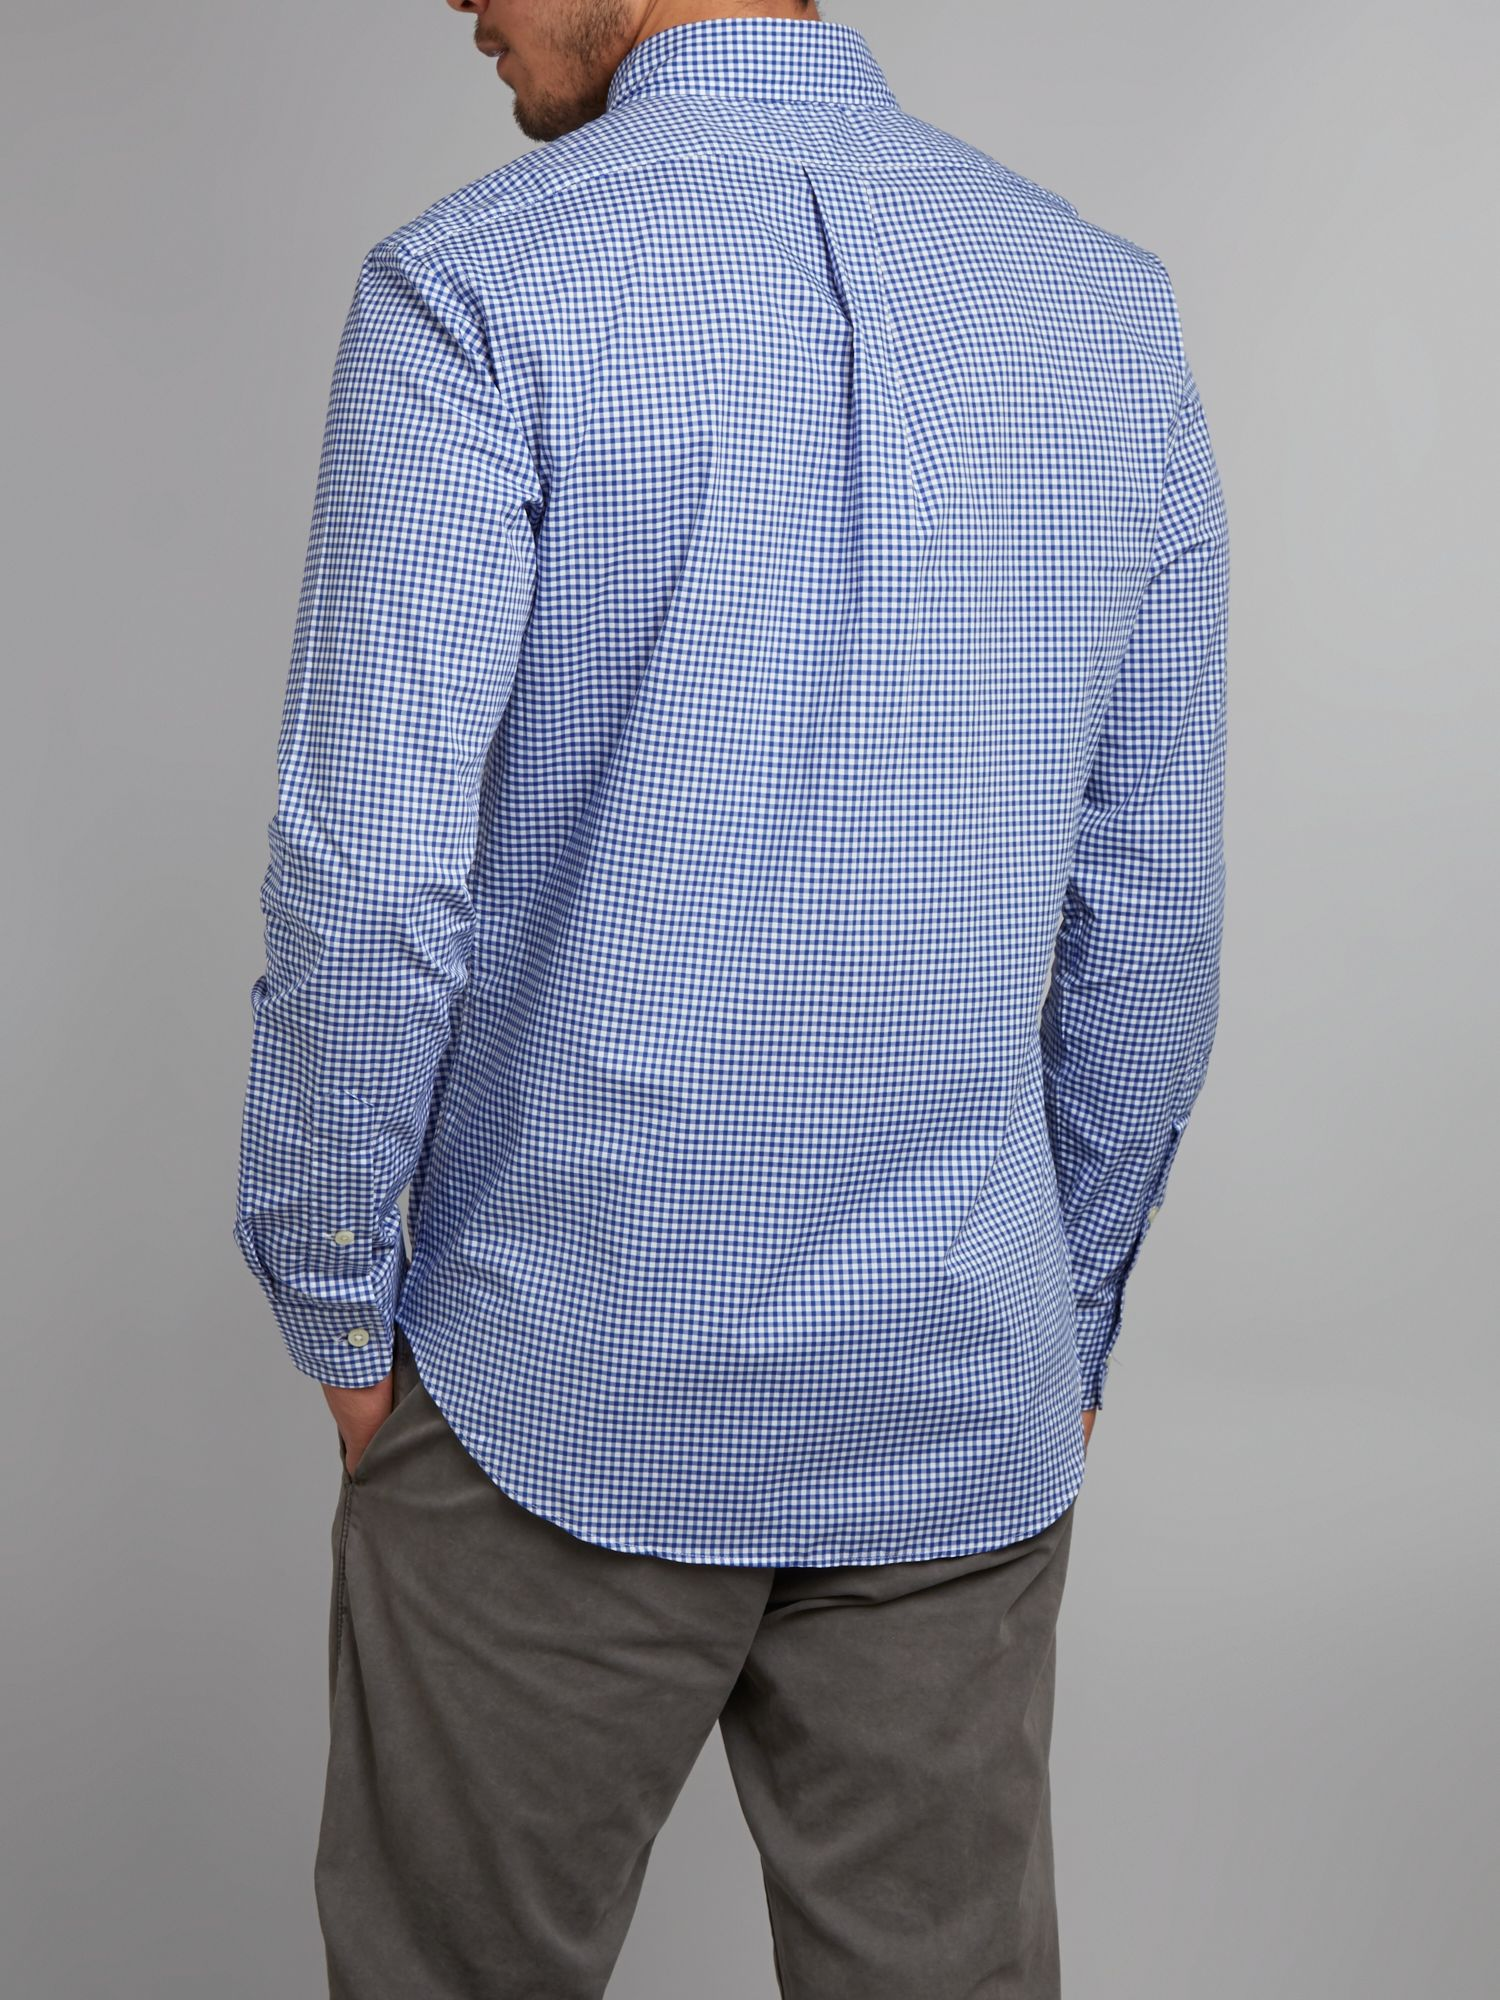 Polo ralph lauren slim fit gingham check shirt in blue for for Slim fit gingham check shirt